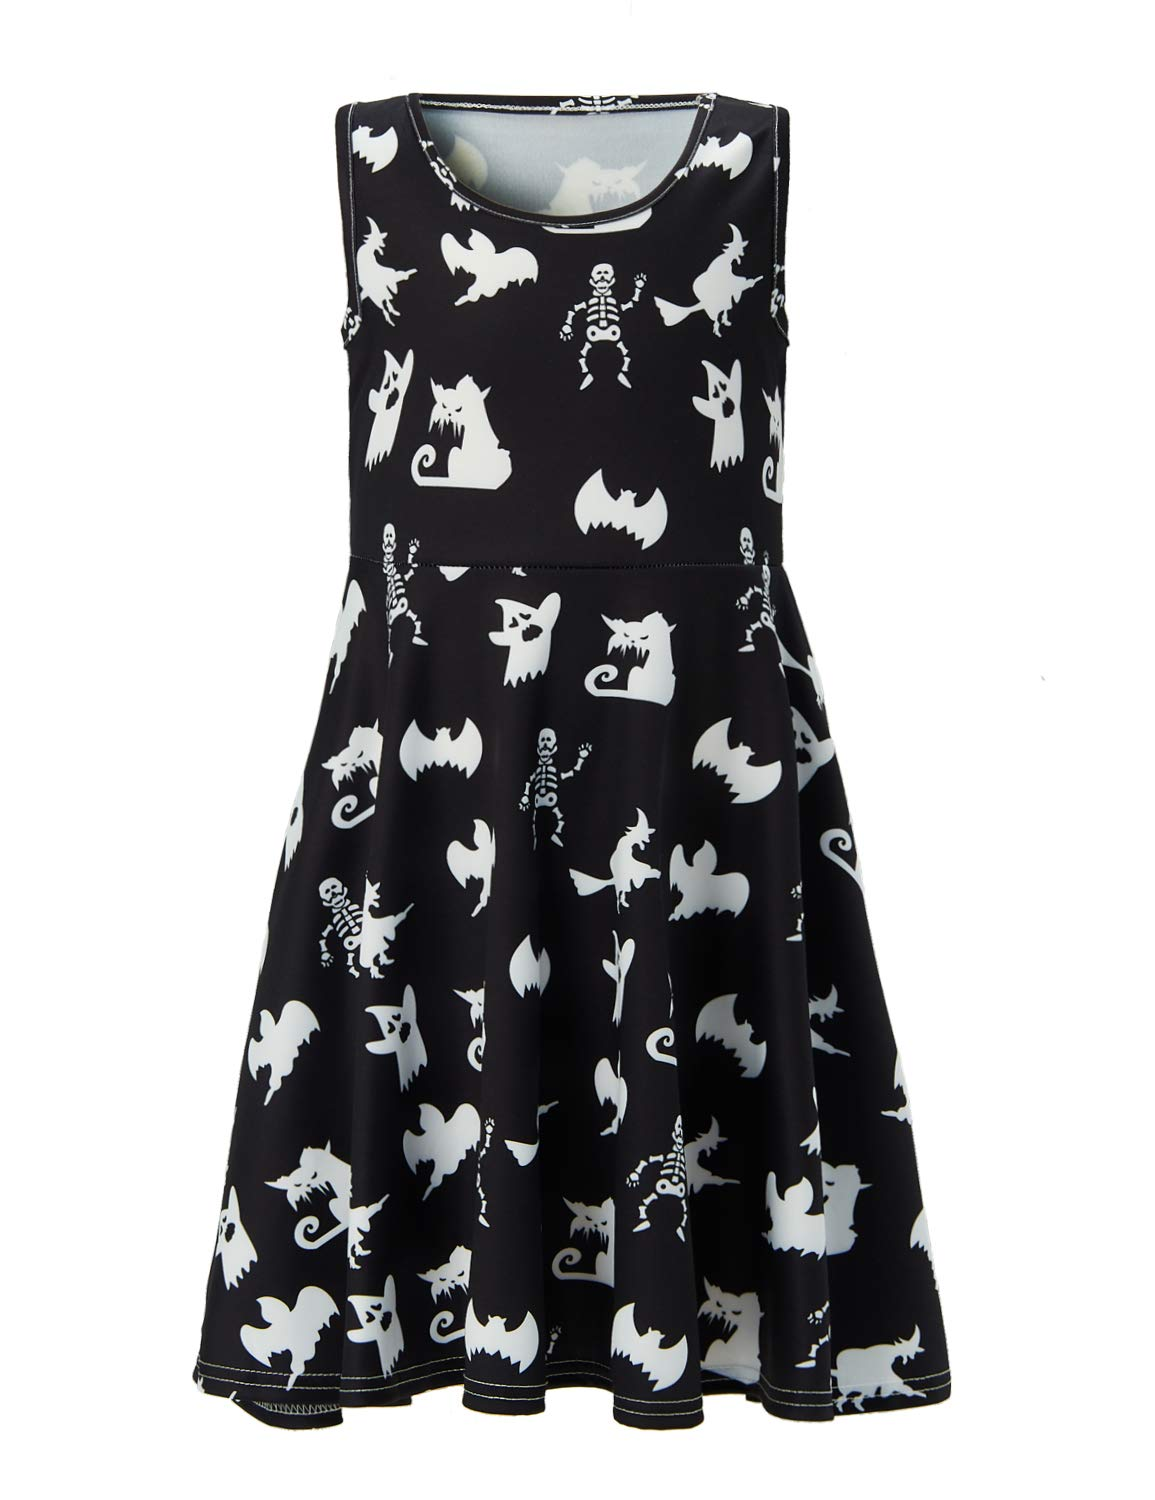 UNIFACO Big Girls Ghost Halloween Dress Holiday Party Sleeveless Bat Printed Dress 10-13 T by UNIFACO (Image #1)